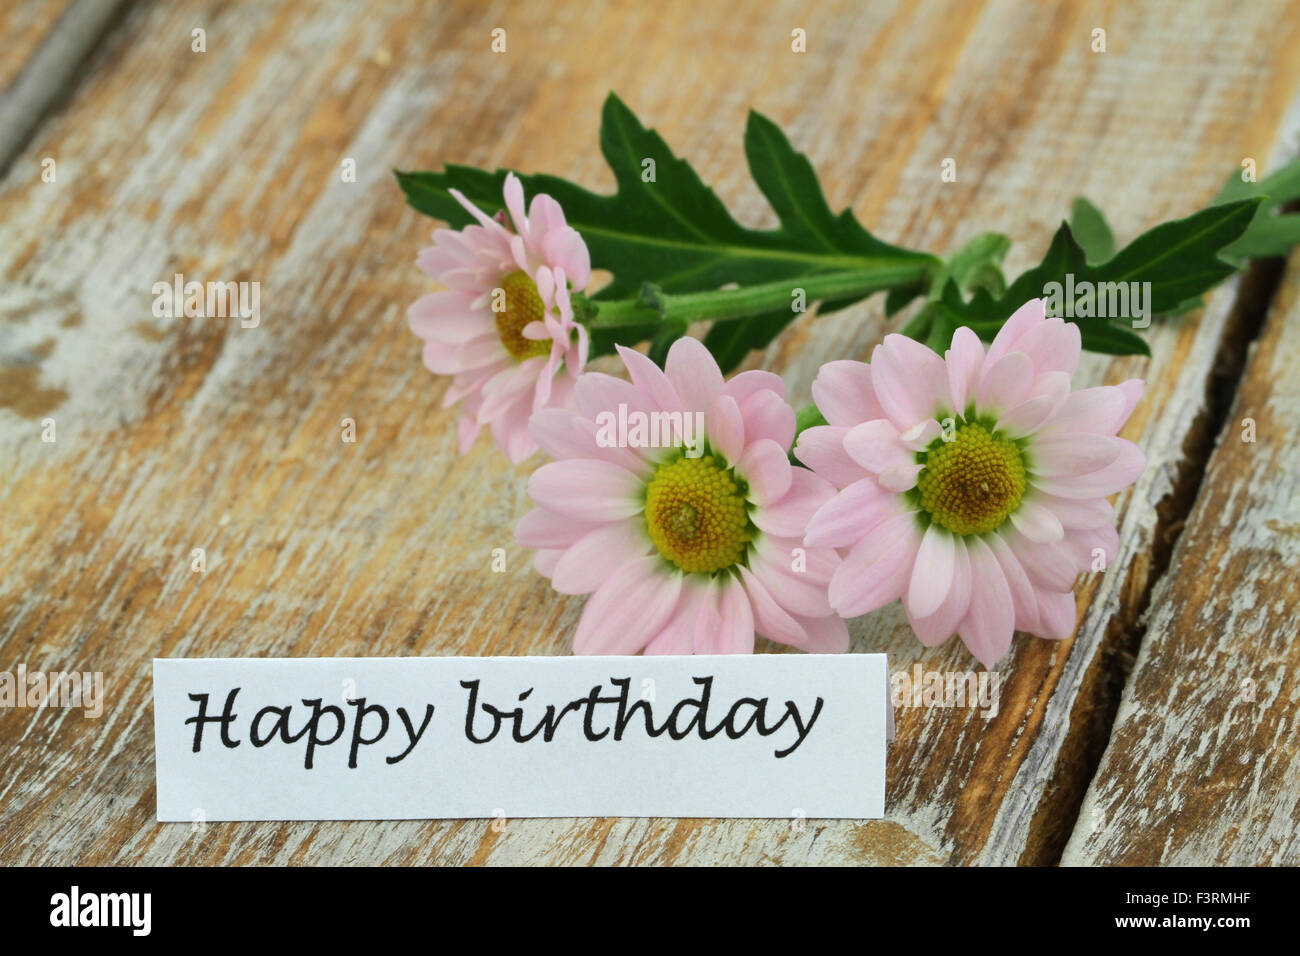 Happy Birthday Card With Pink Daisies On Rustic Wooden Surface